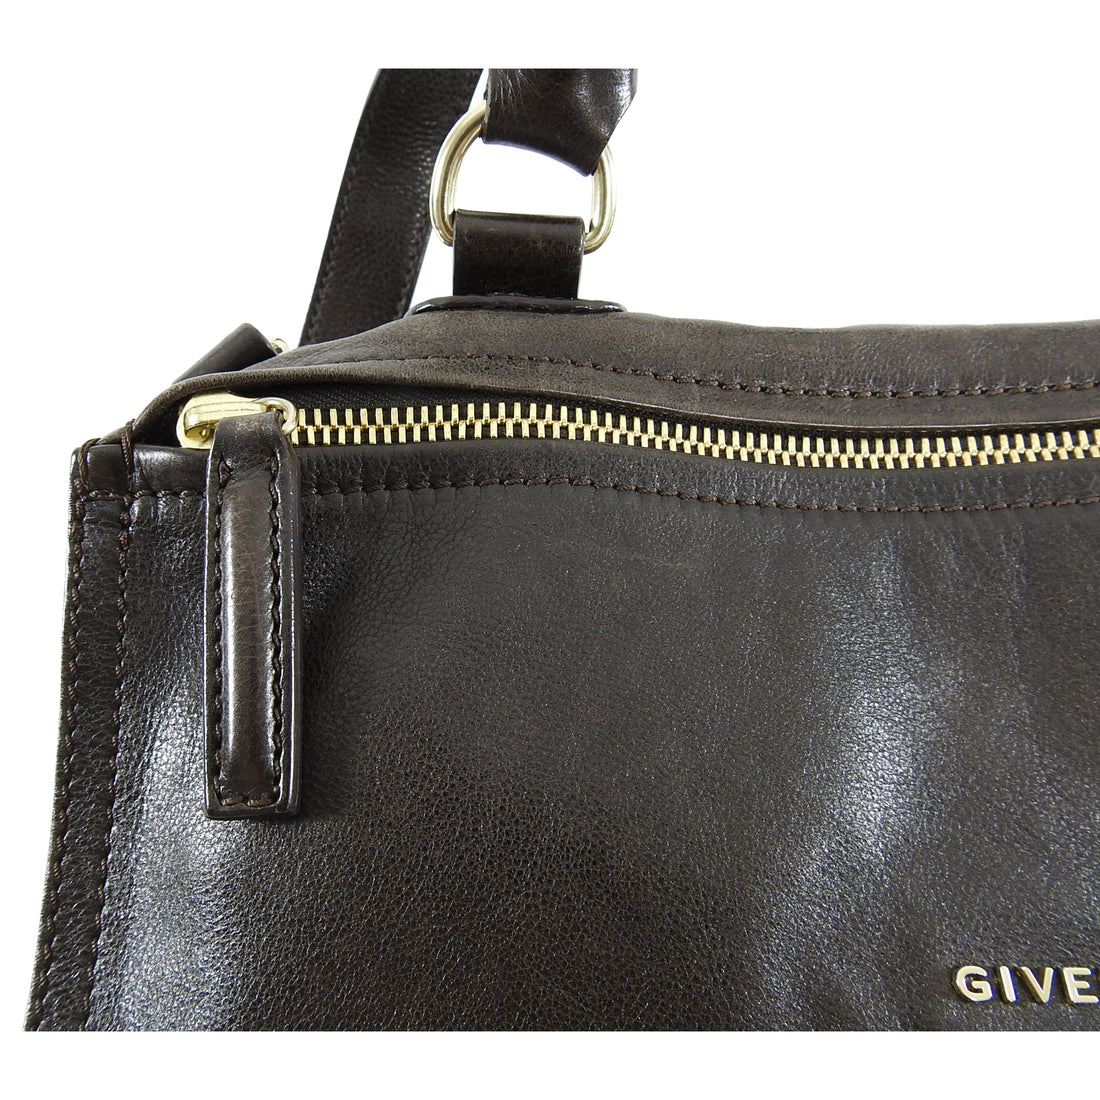 Givenchy Medium Brown Leather Pandora Bag